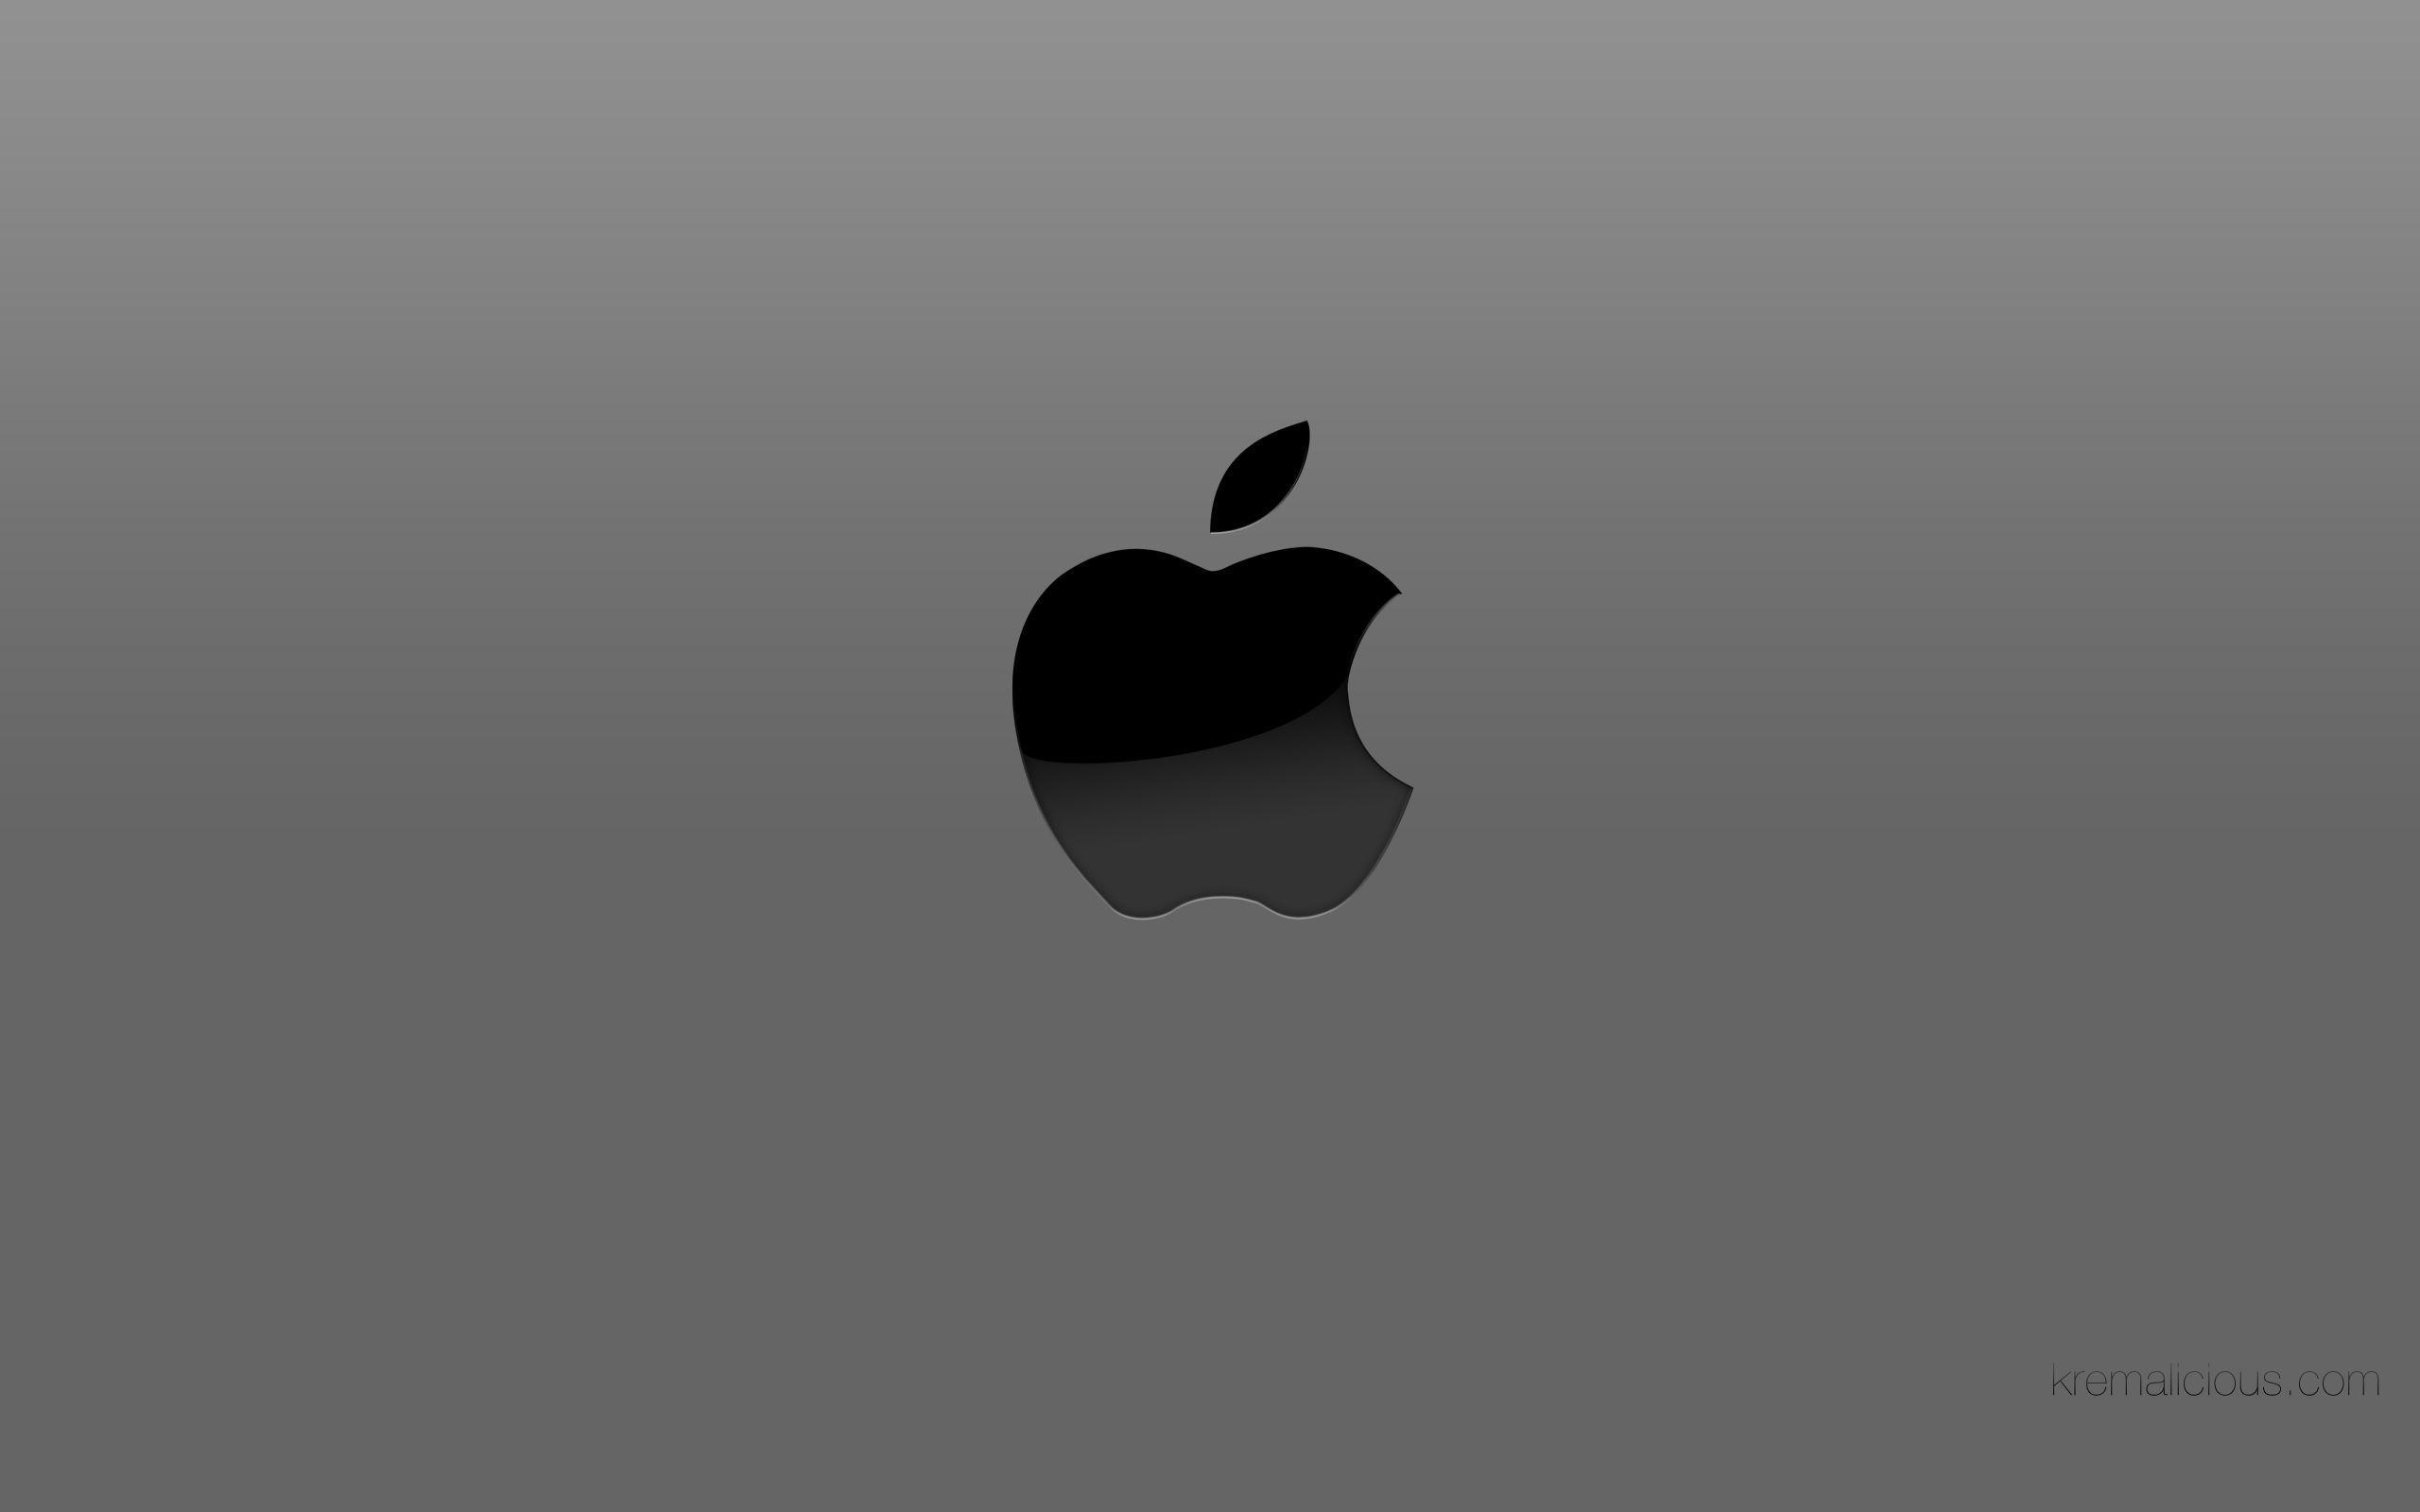 Official apple logo high resolution hd cool 7 hd wallpapers